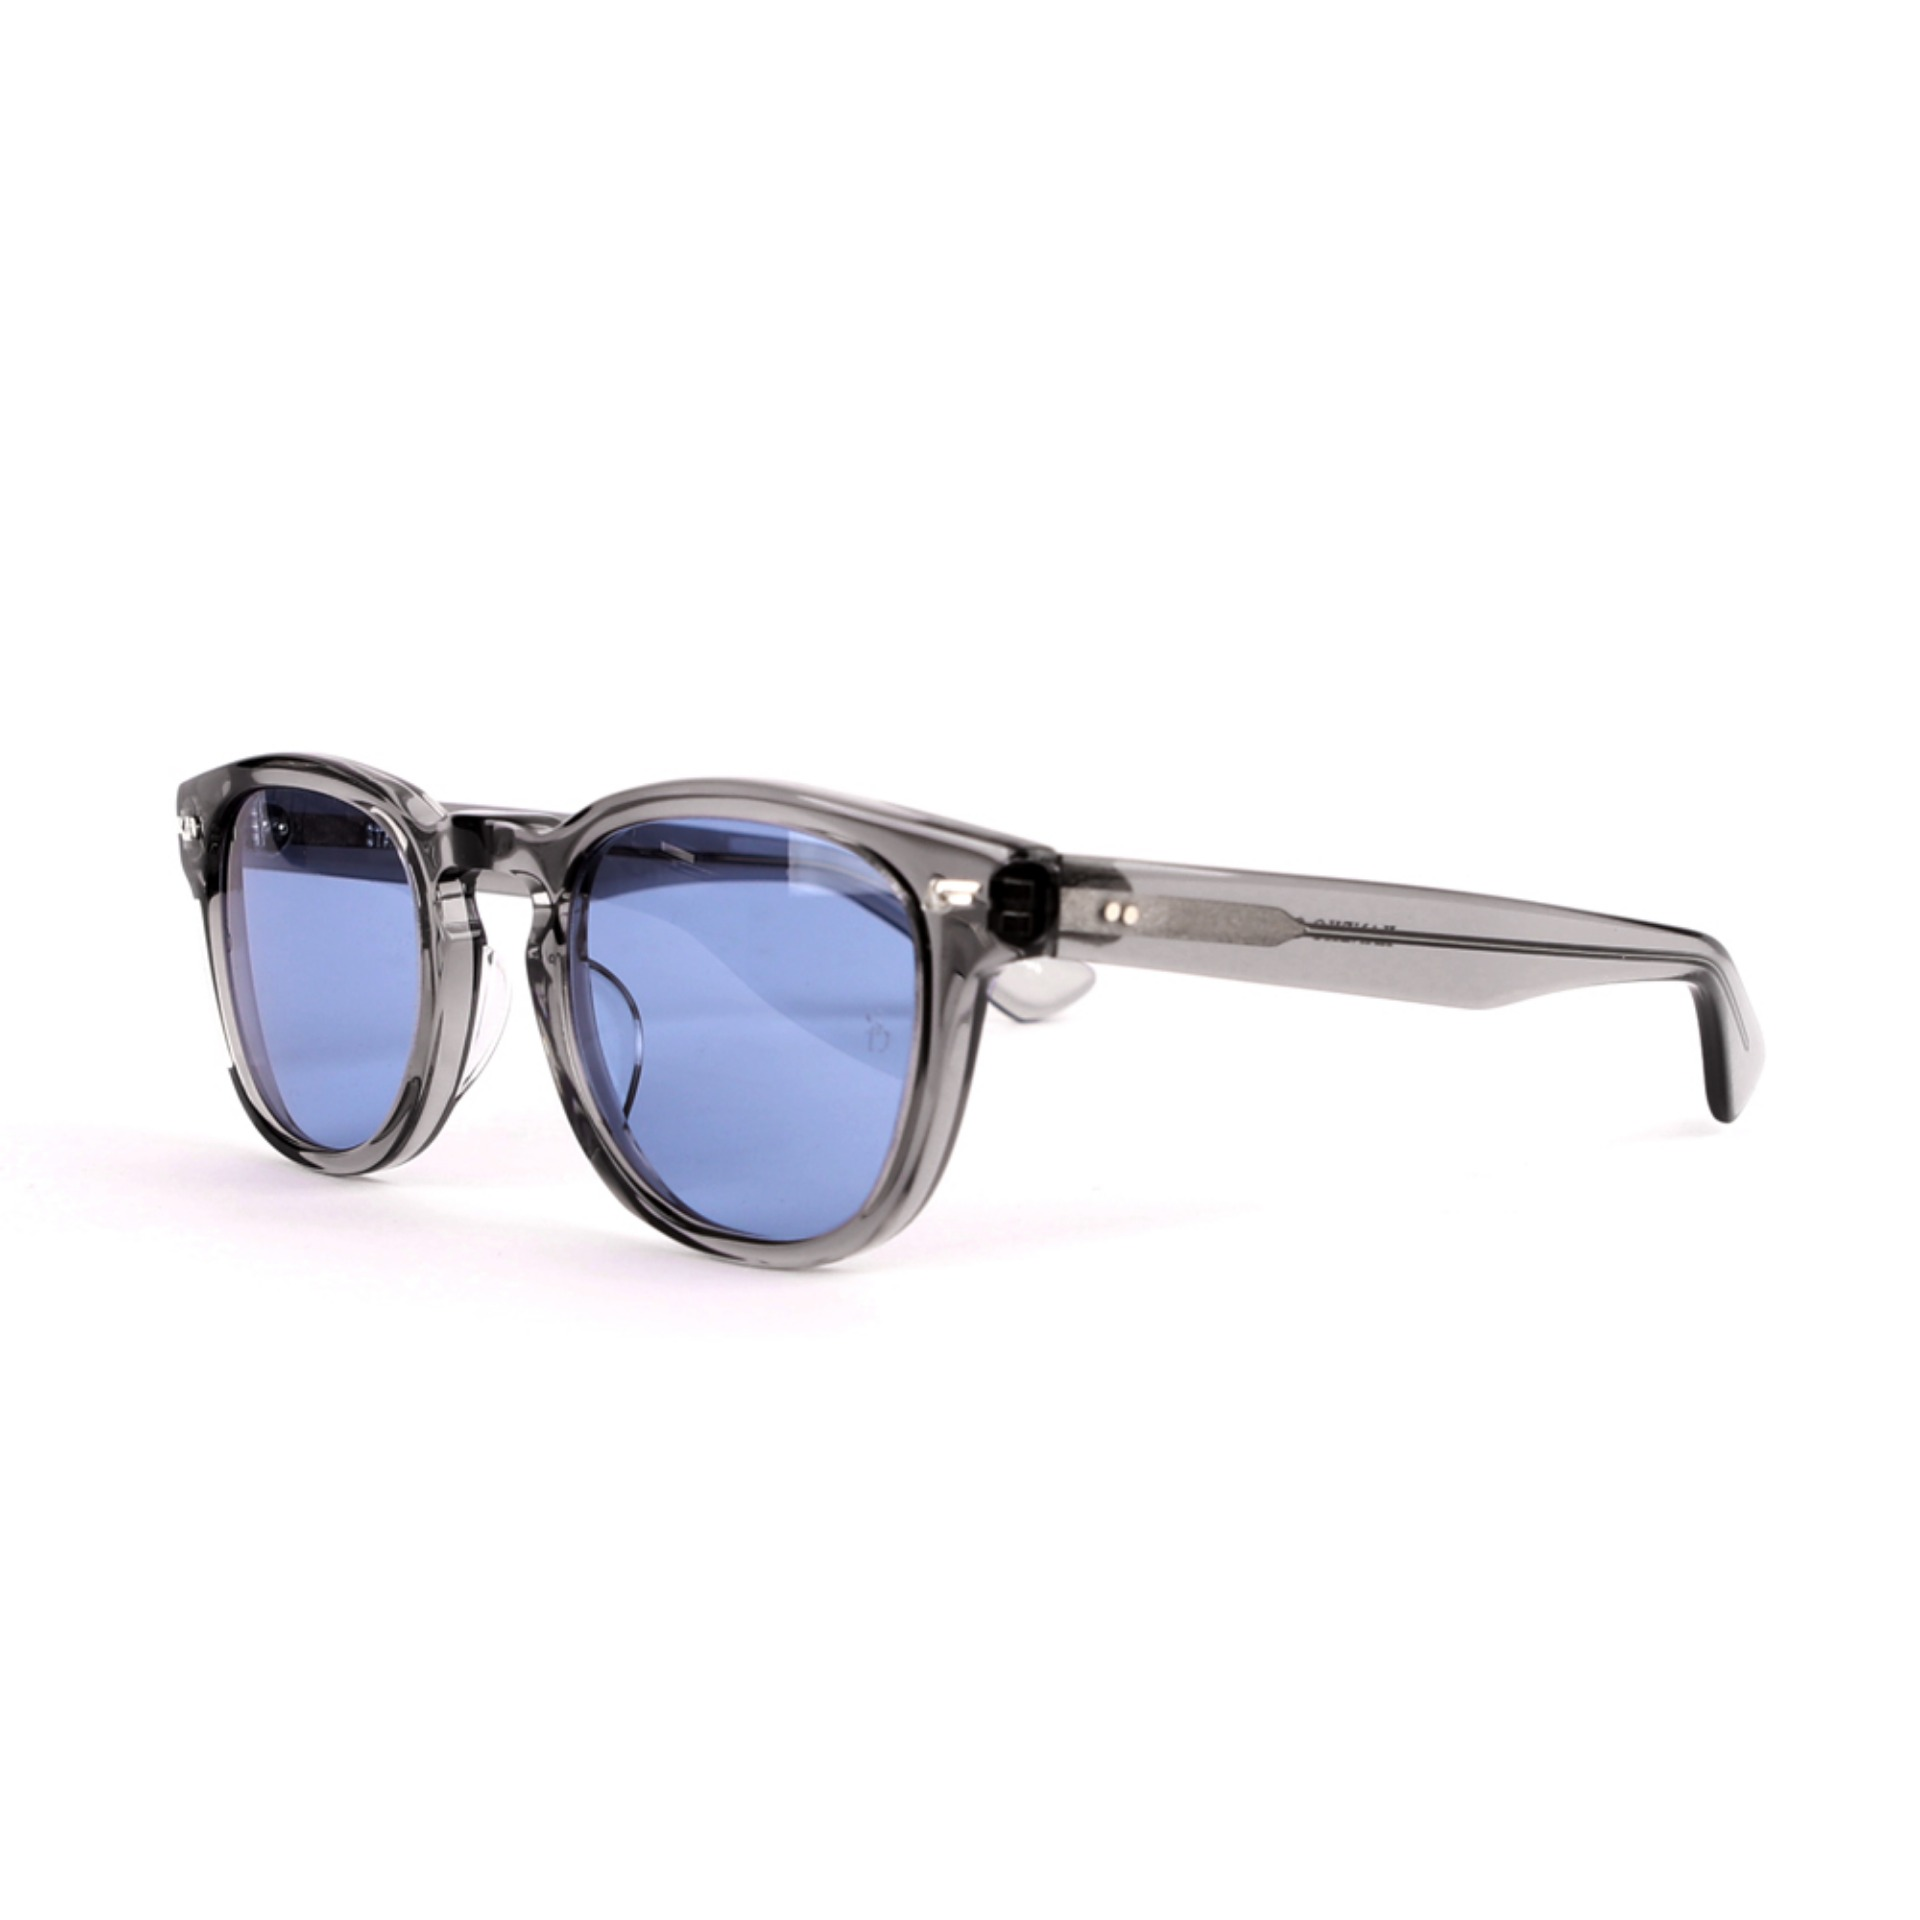 KANEKO OPTICAL X SD SUNGLASSES(GRAY X BLUE)(RESTOCK)